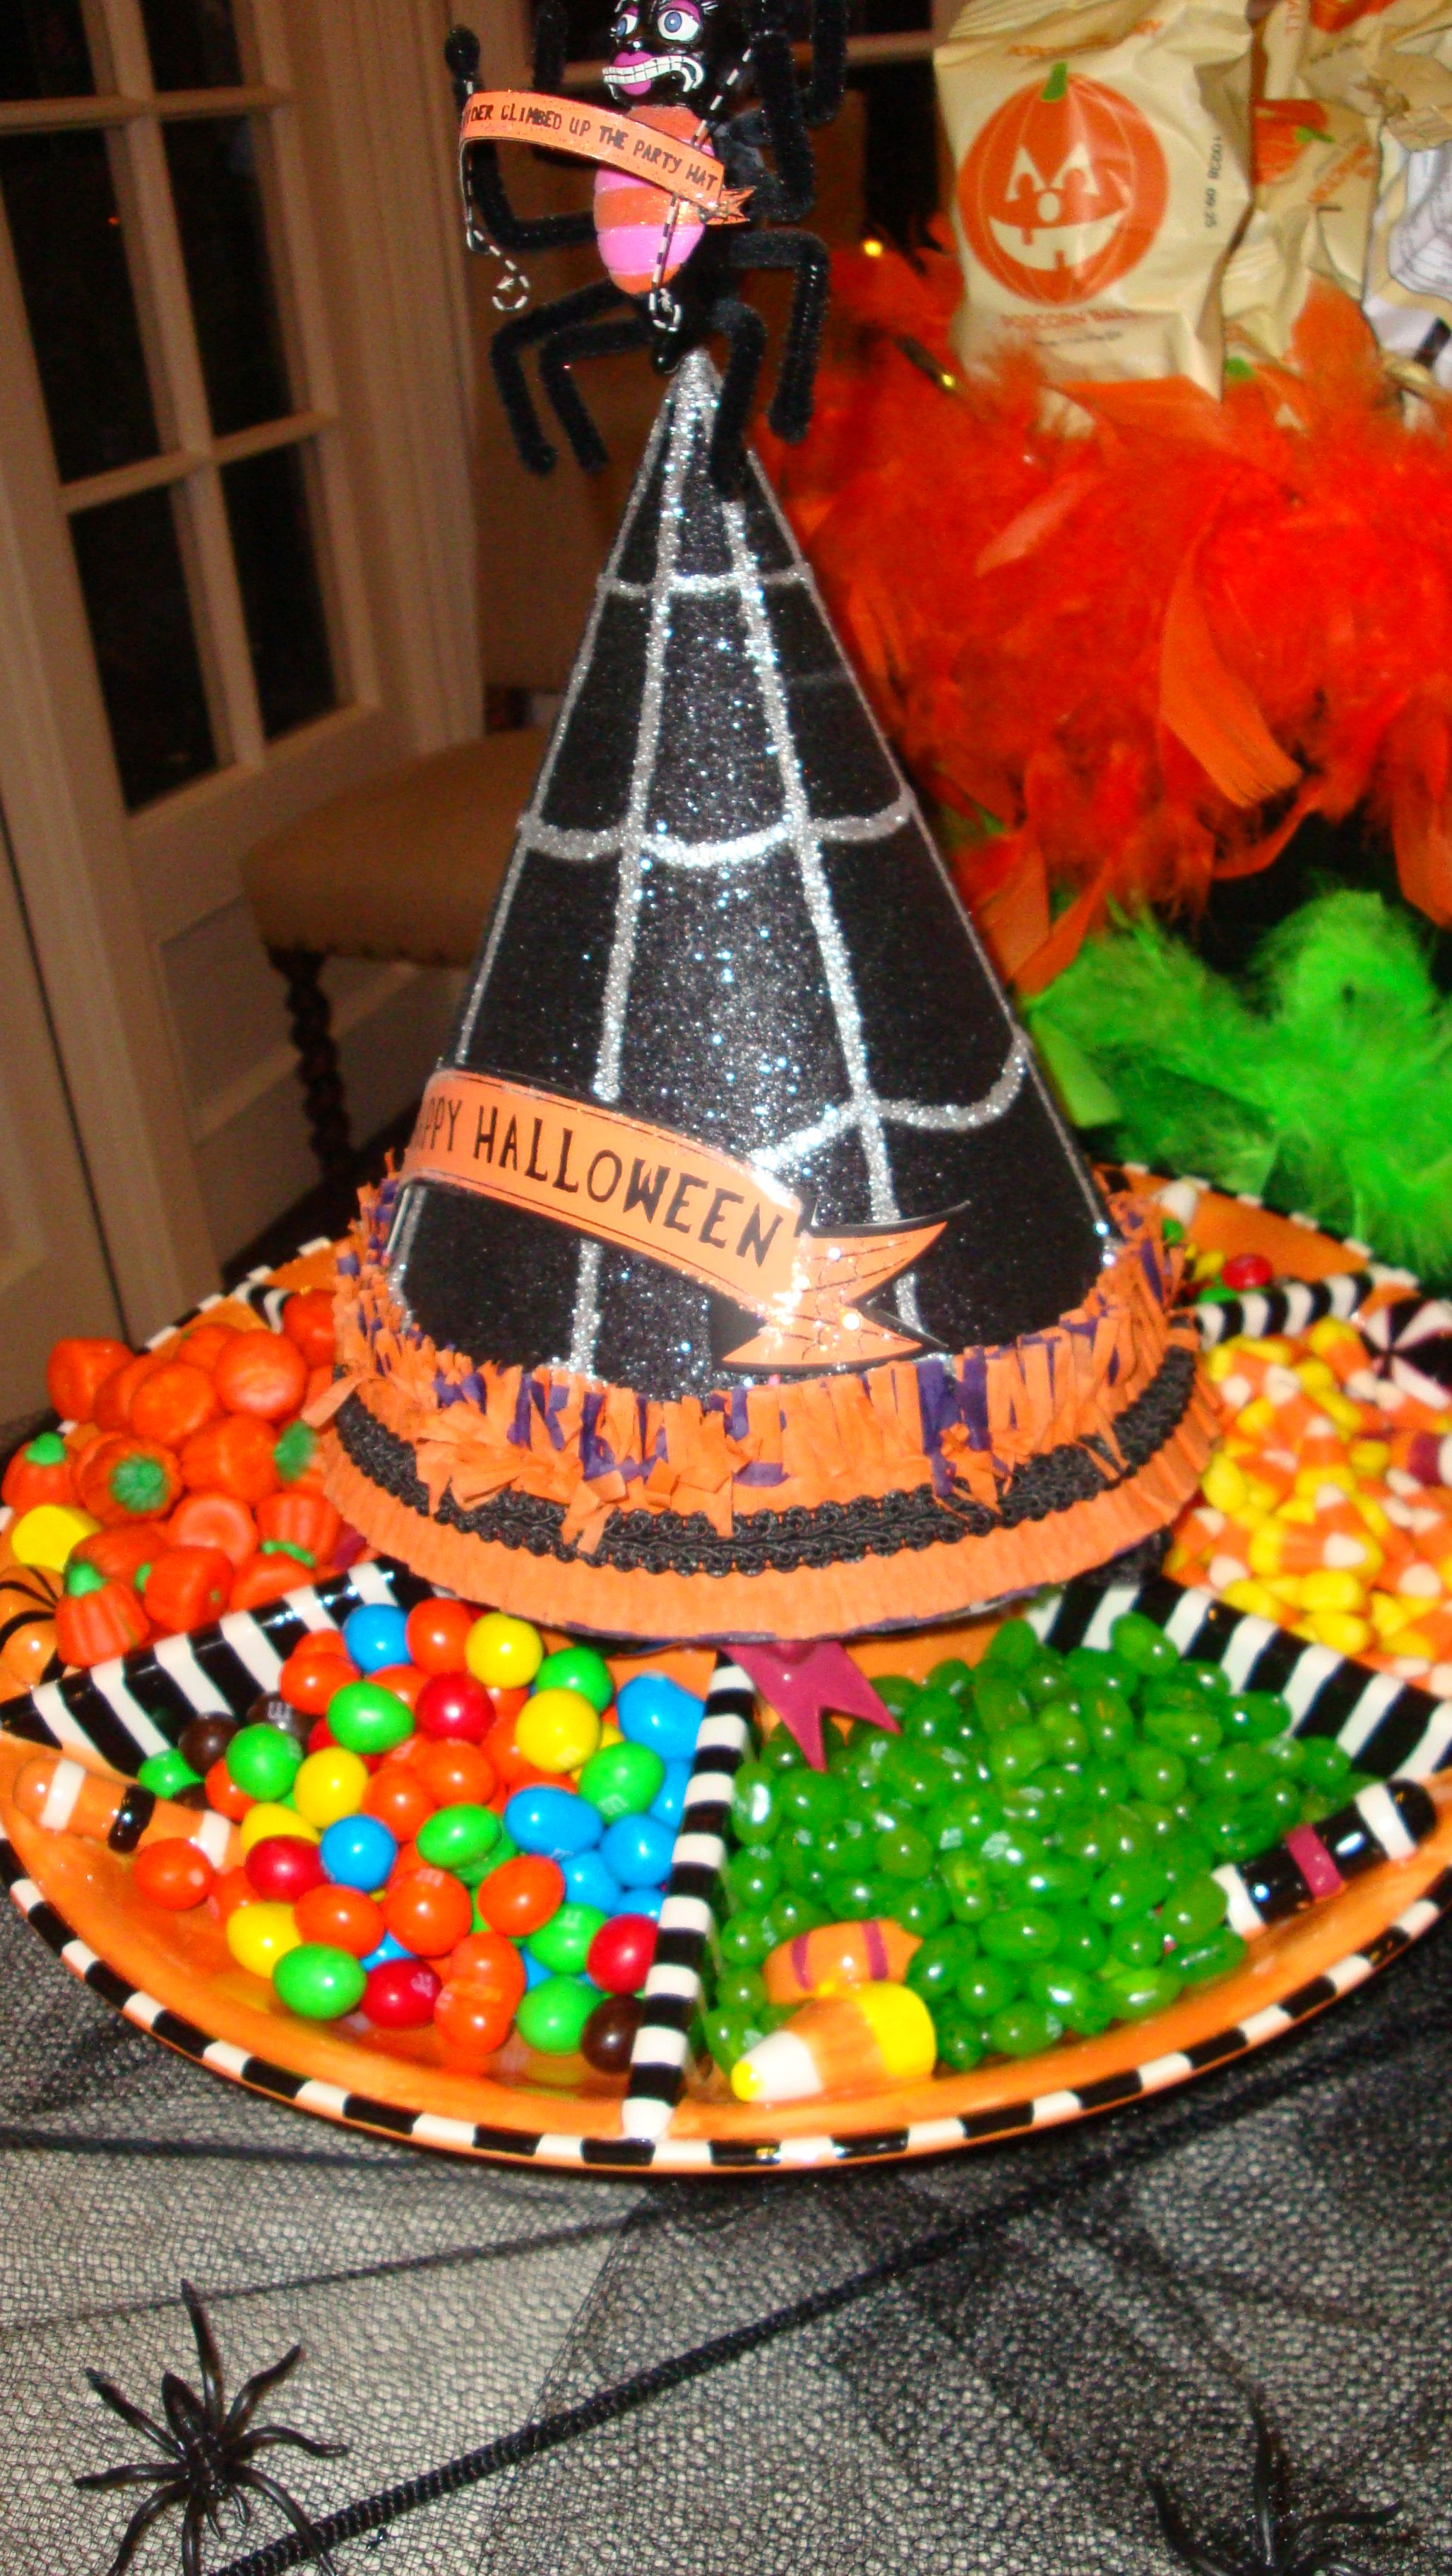 Awesome Halloween party idea, pop a witches hat on your